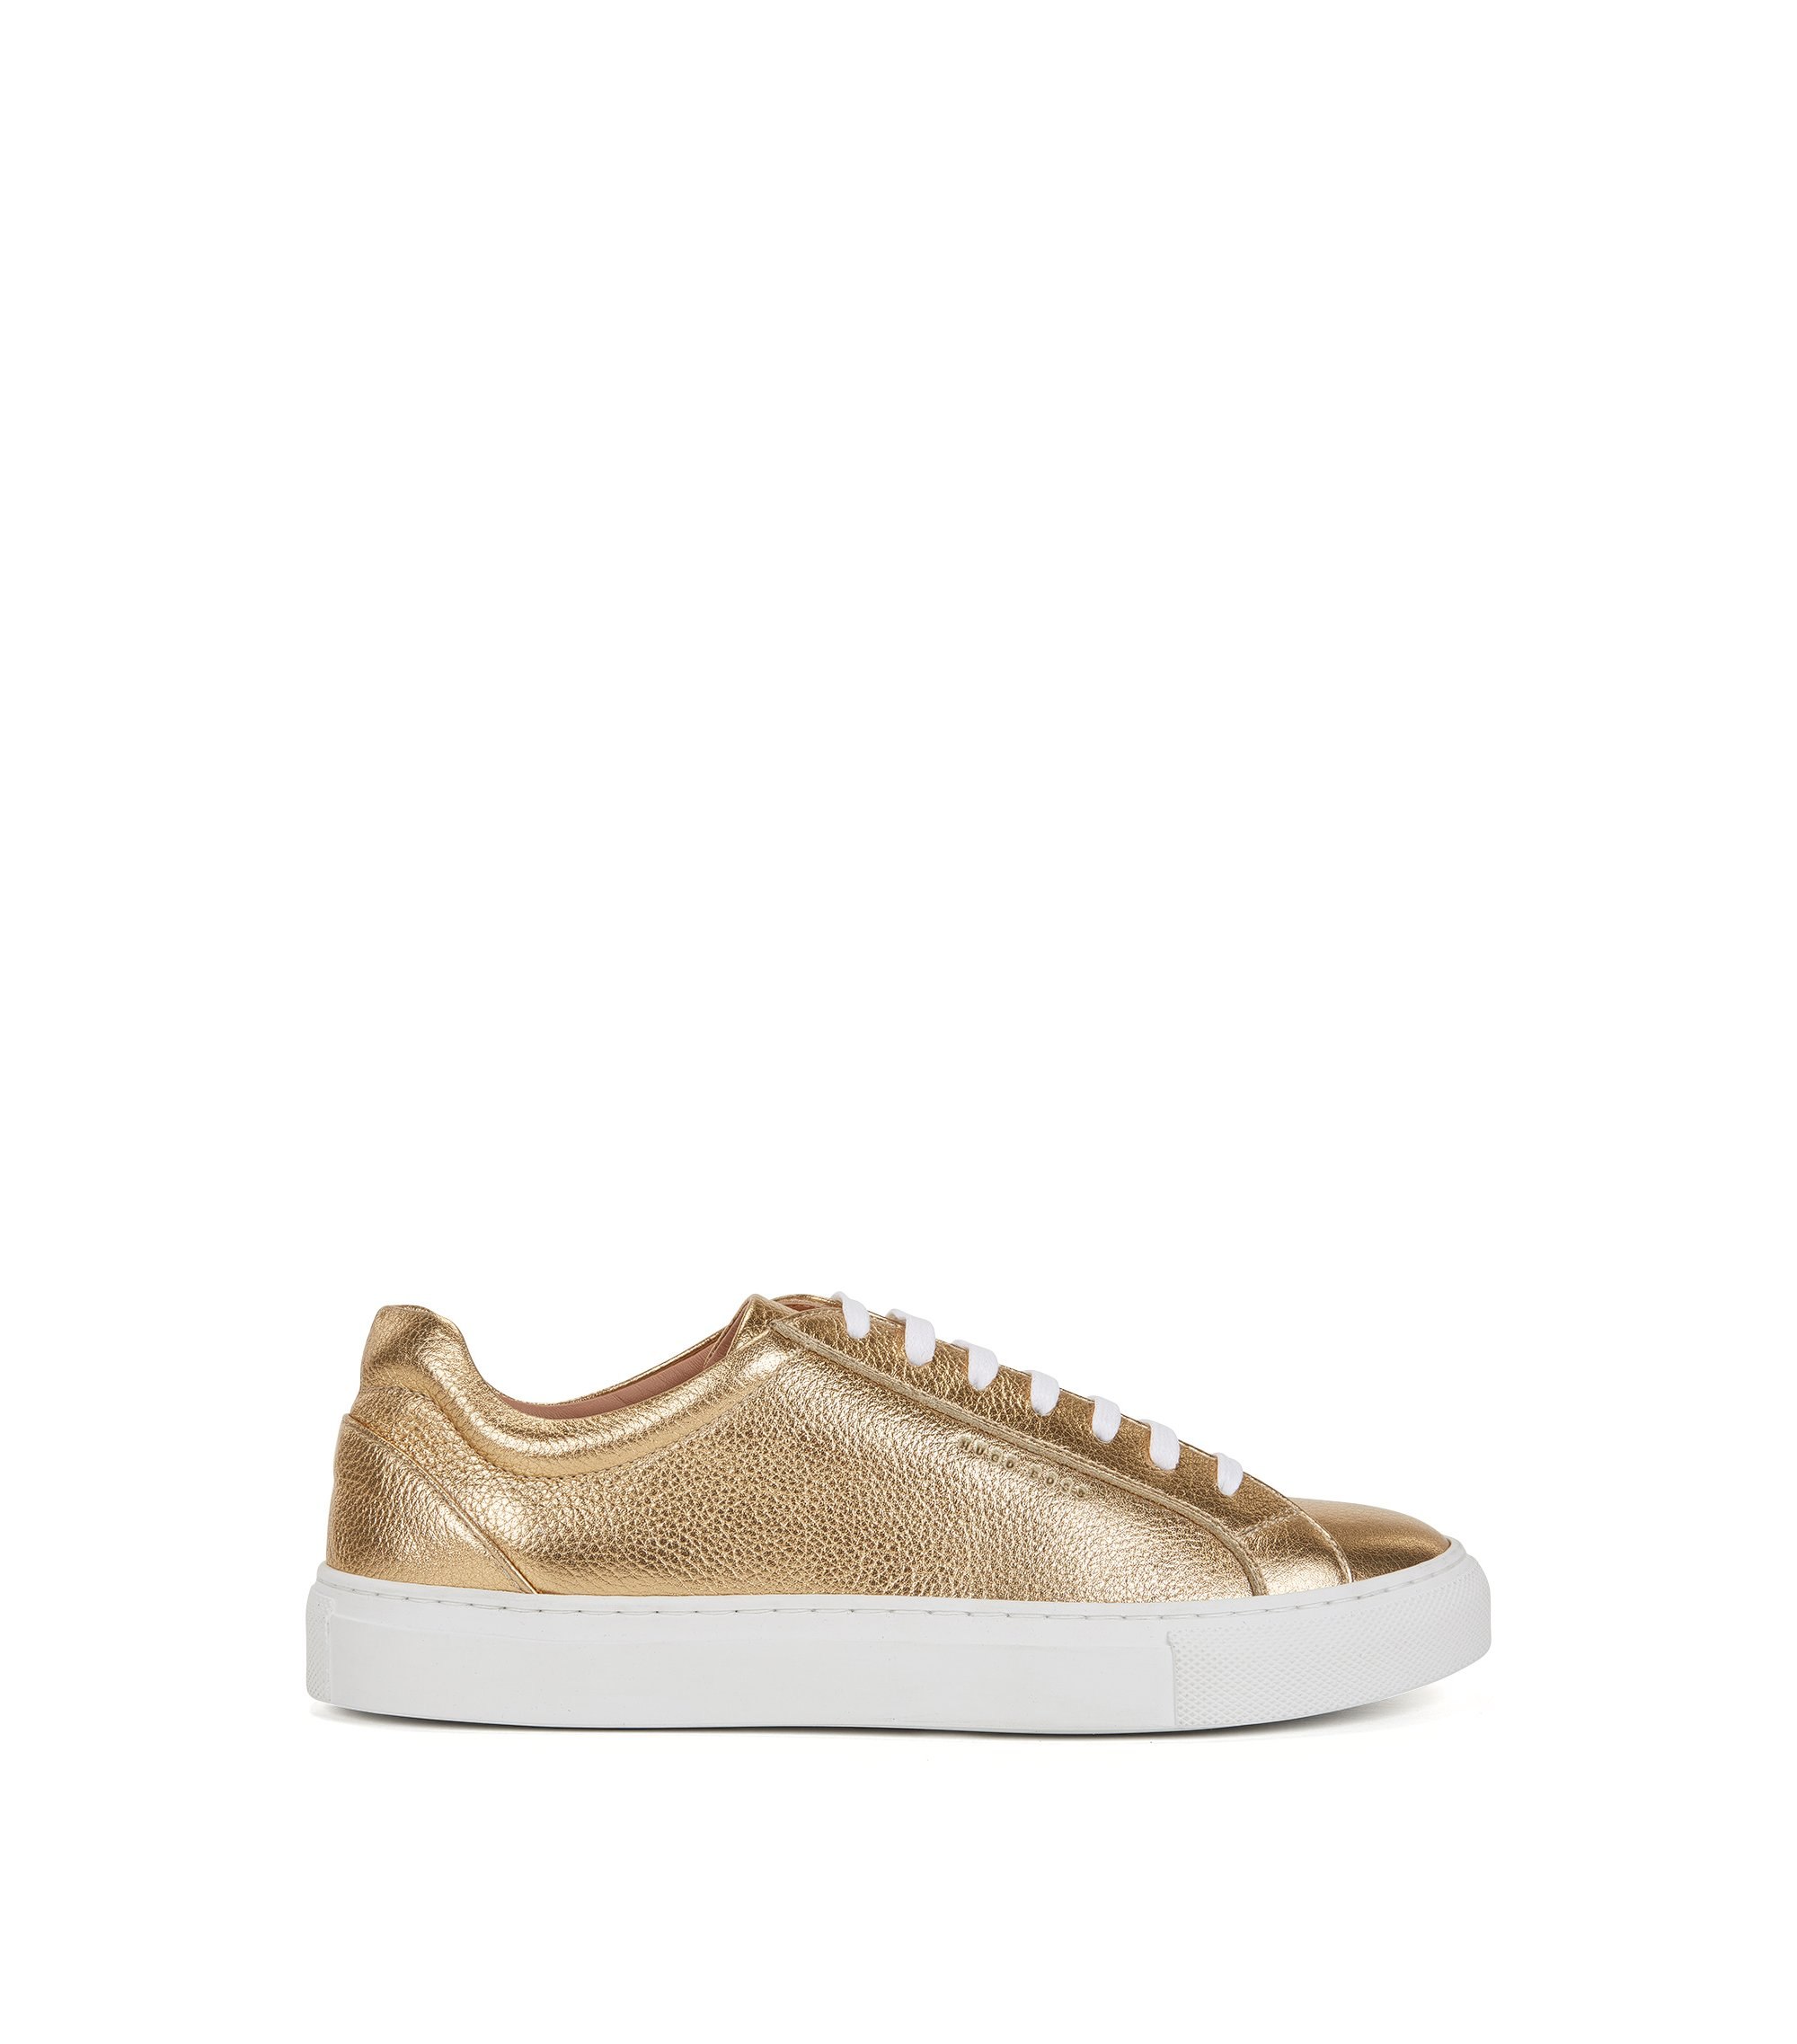 Low-top trainers in metallic leather, Gold